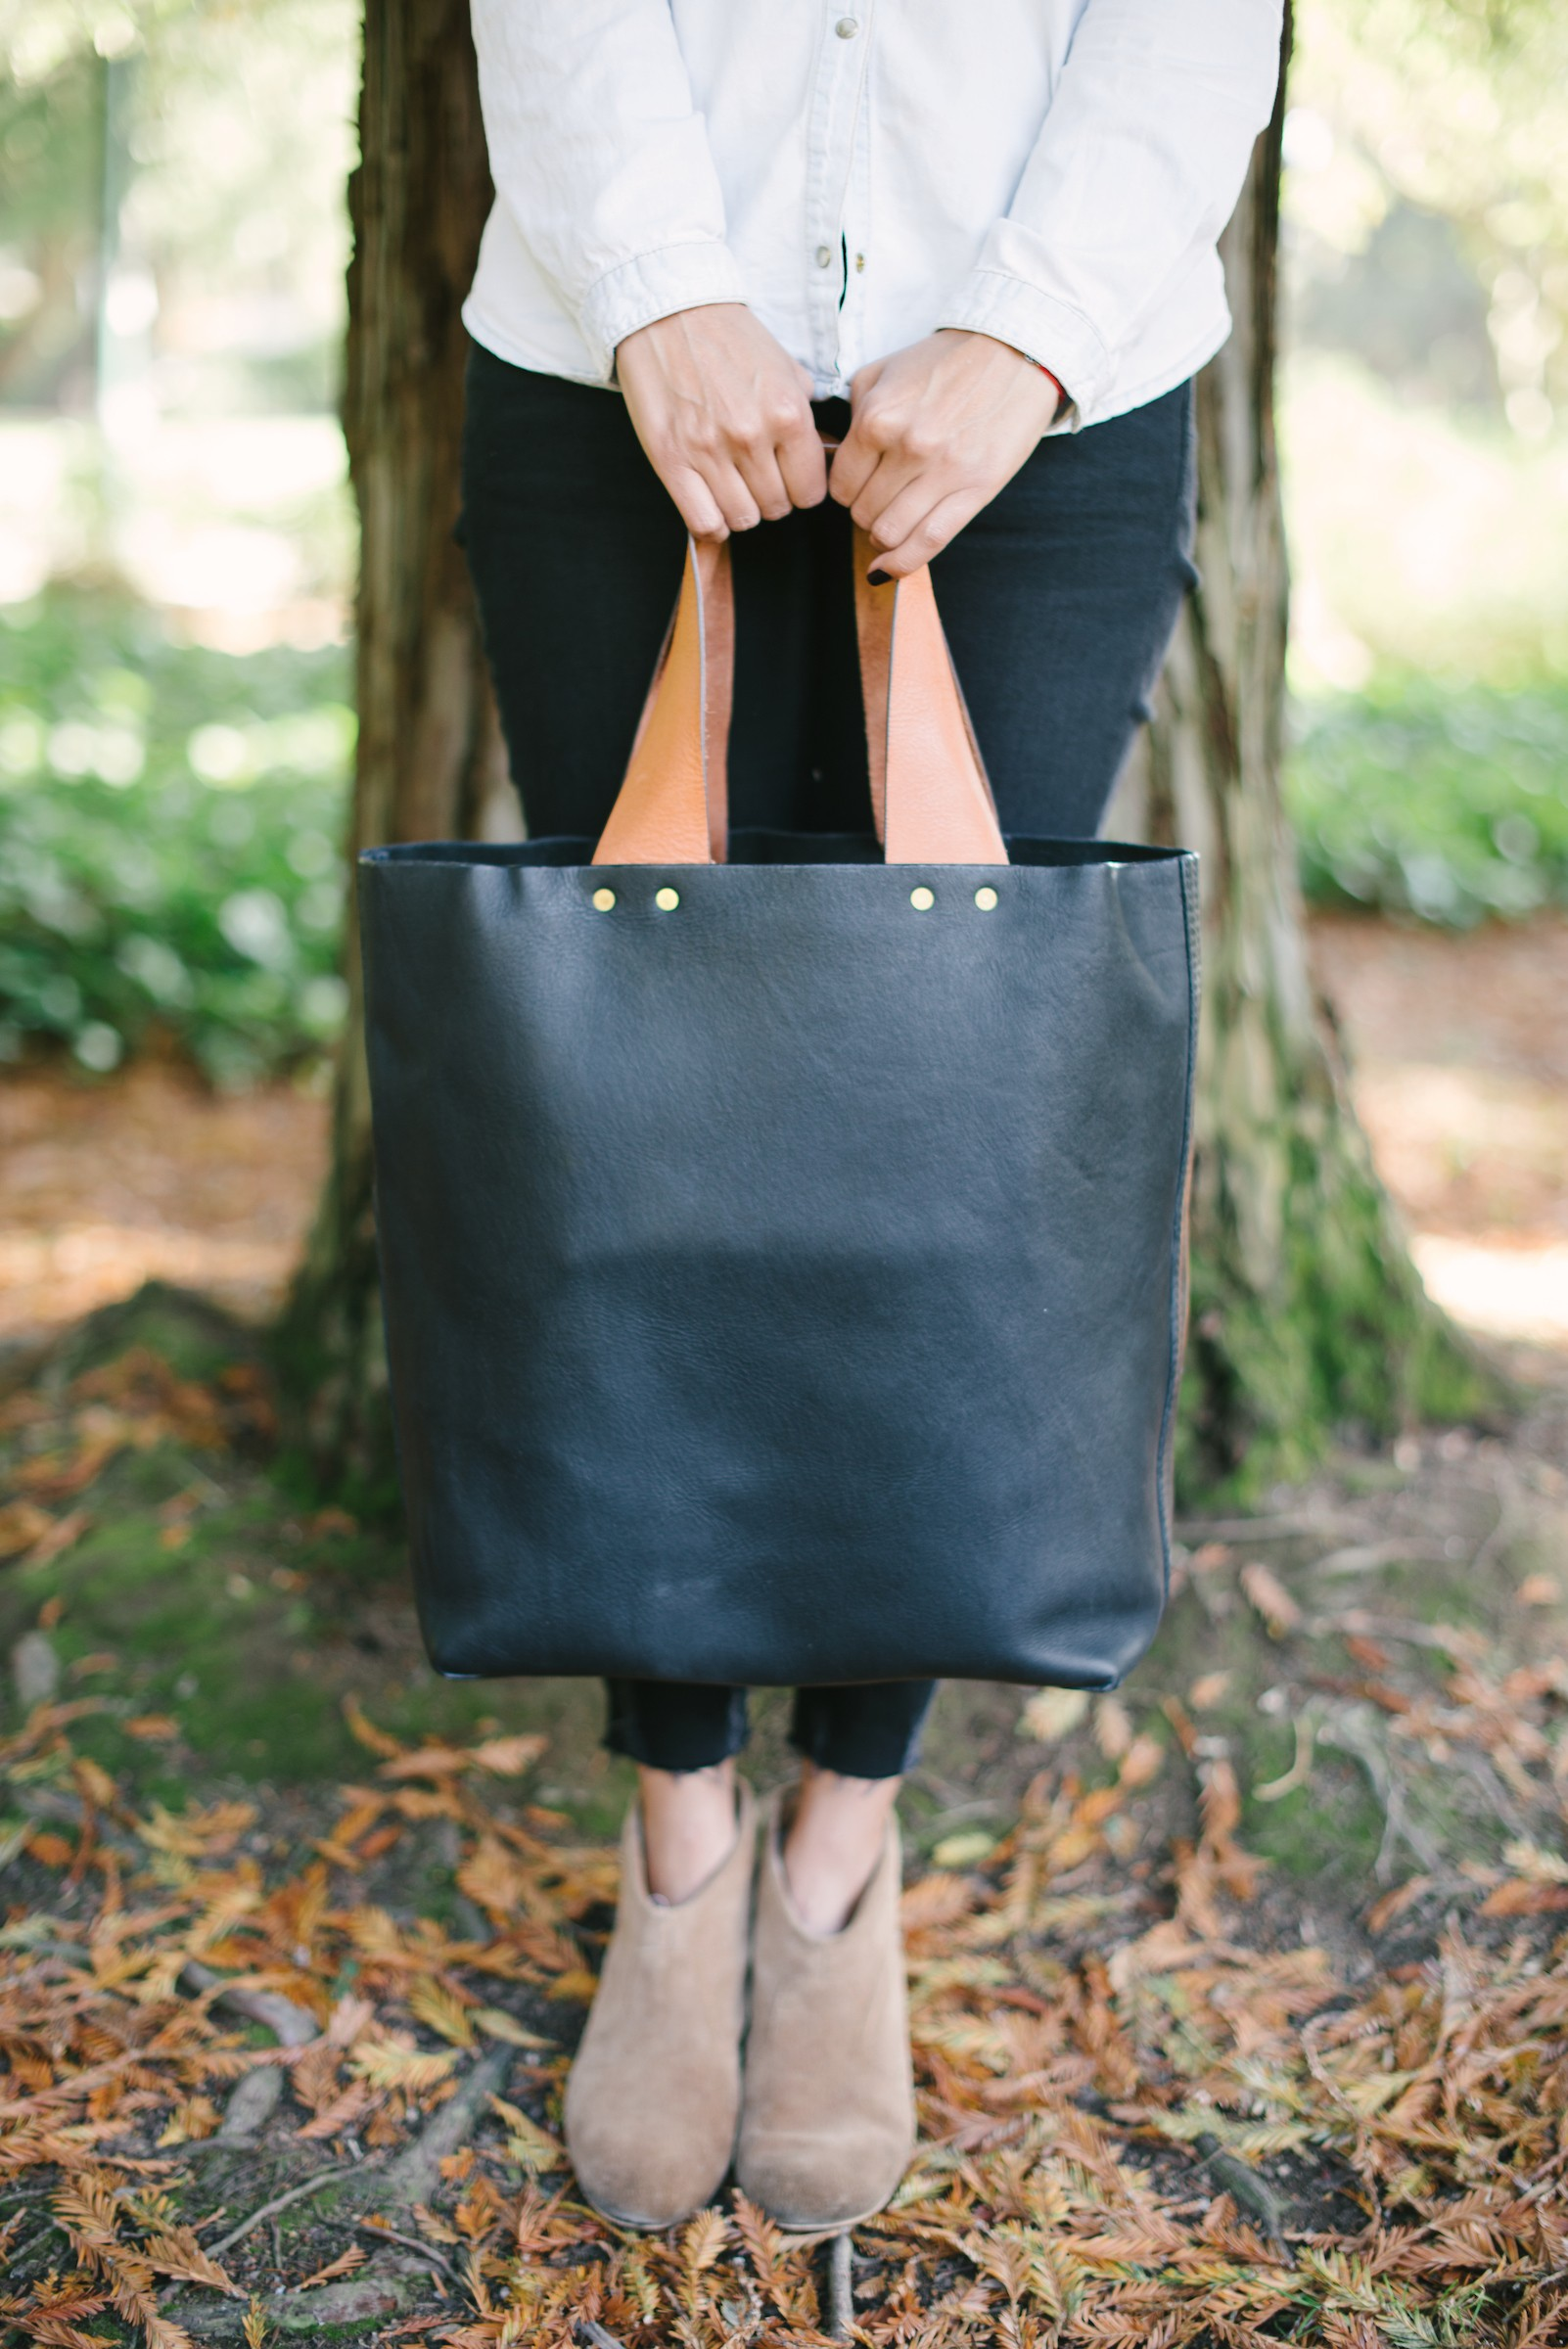 *Limited Edition* Ethical Leather Tote in Caramel & Black  ,  TO THE MARKET Exclusive , $199.00